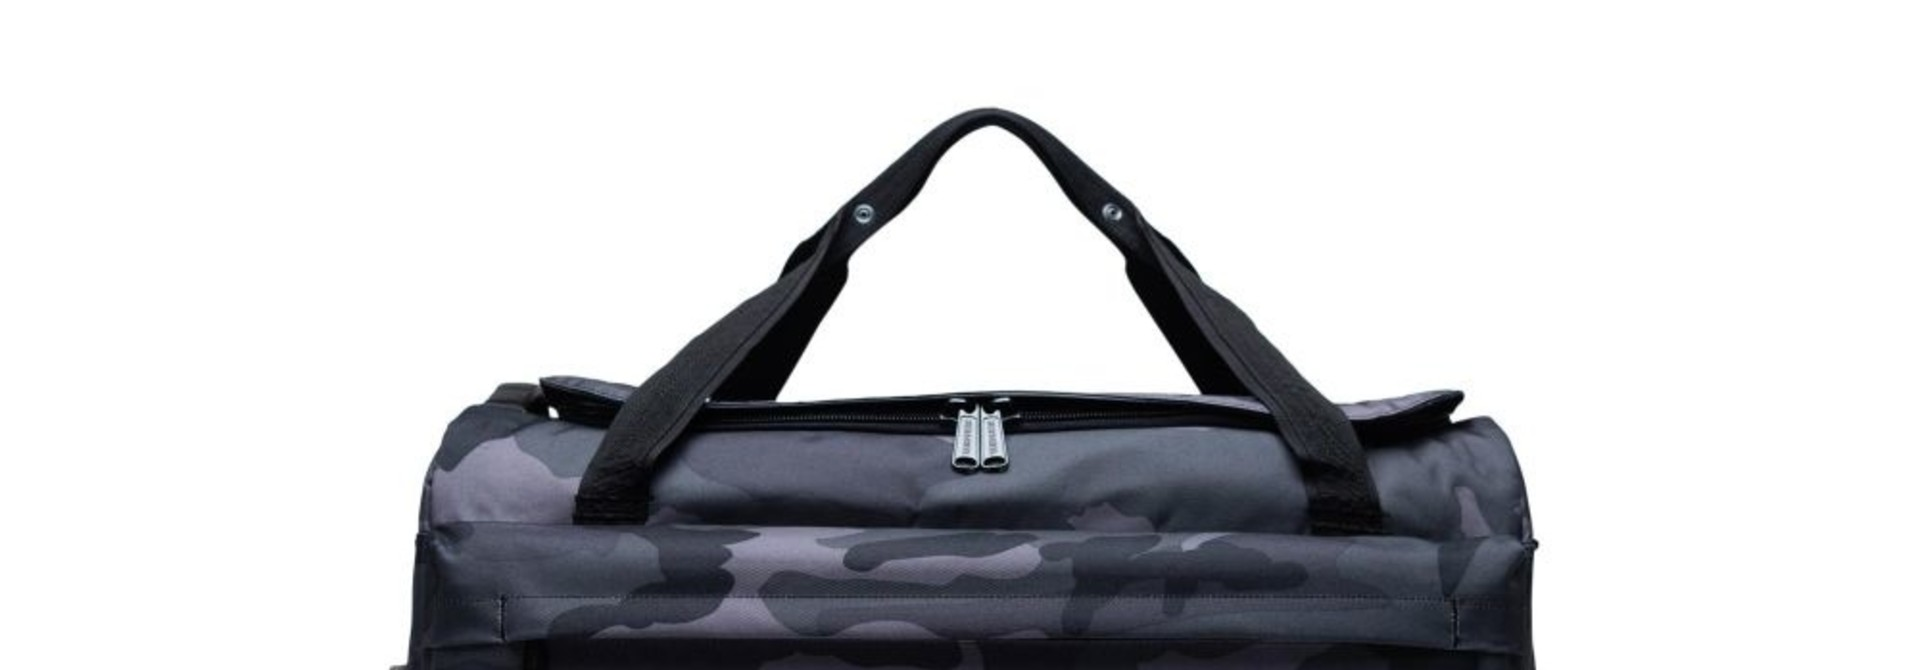 OUTFITTER LUGGAGE 50L